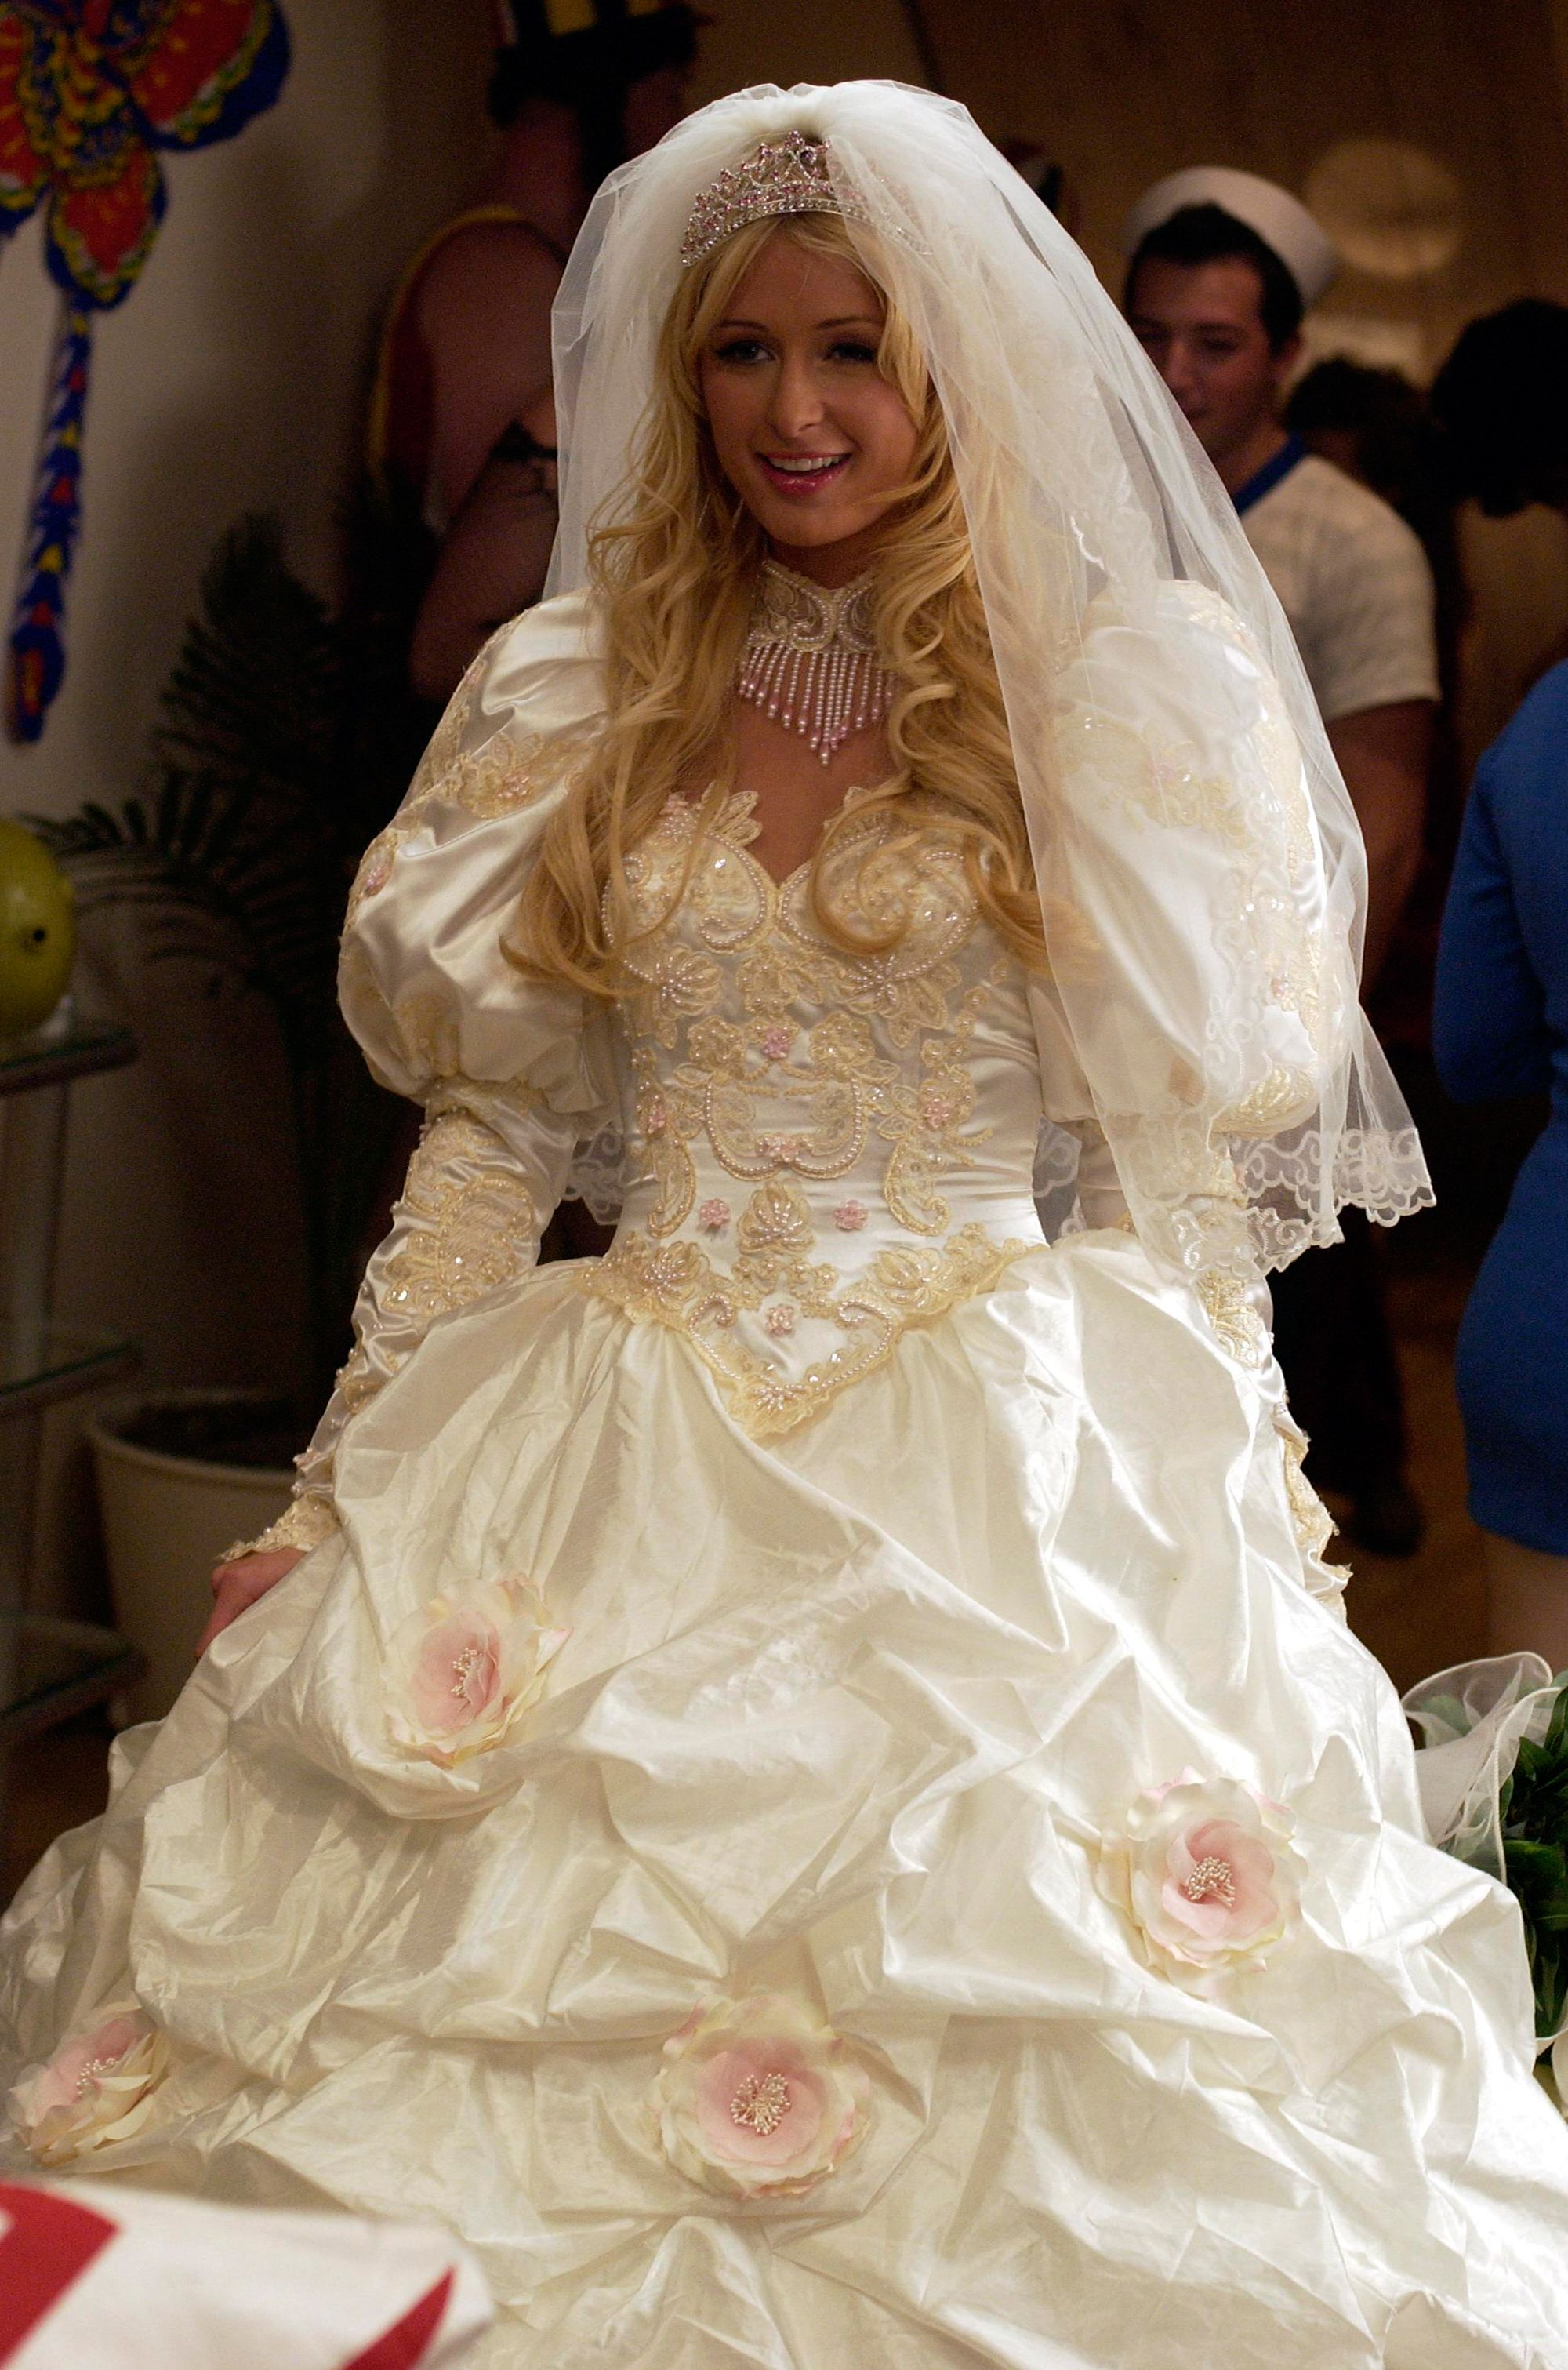 The Worst Wedding Dresses From TV And Films